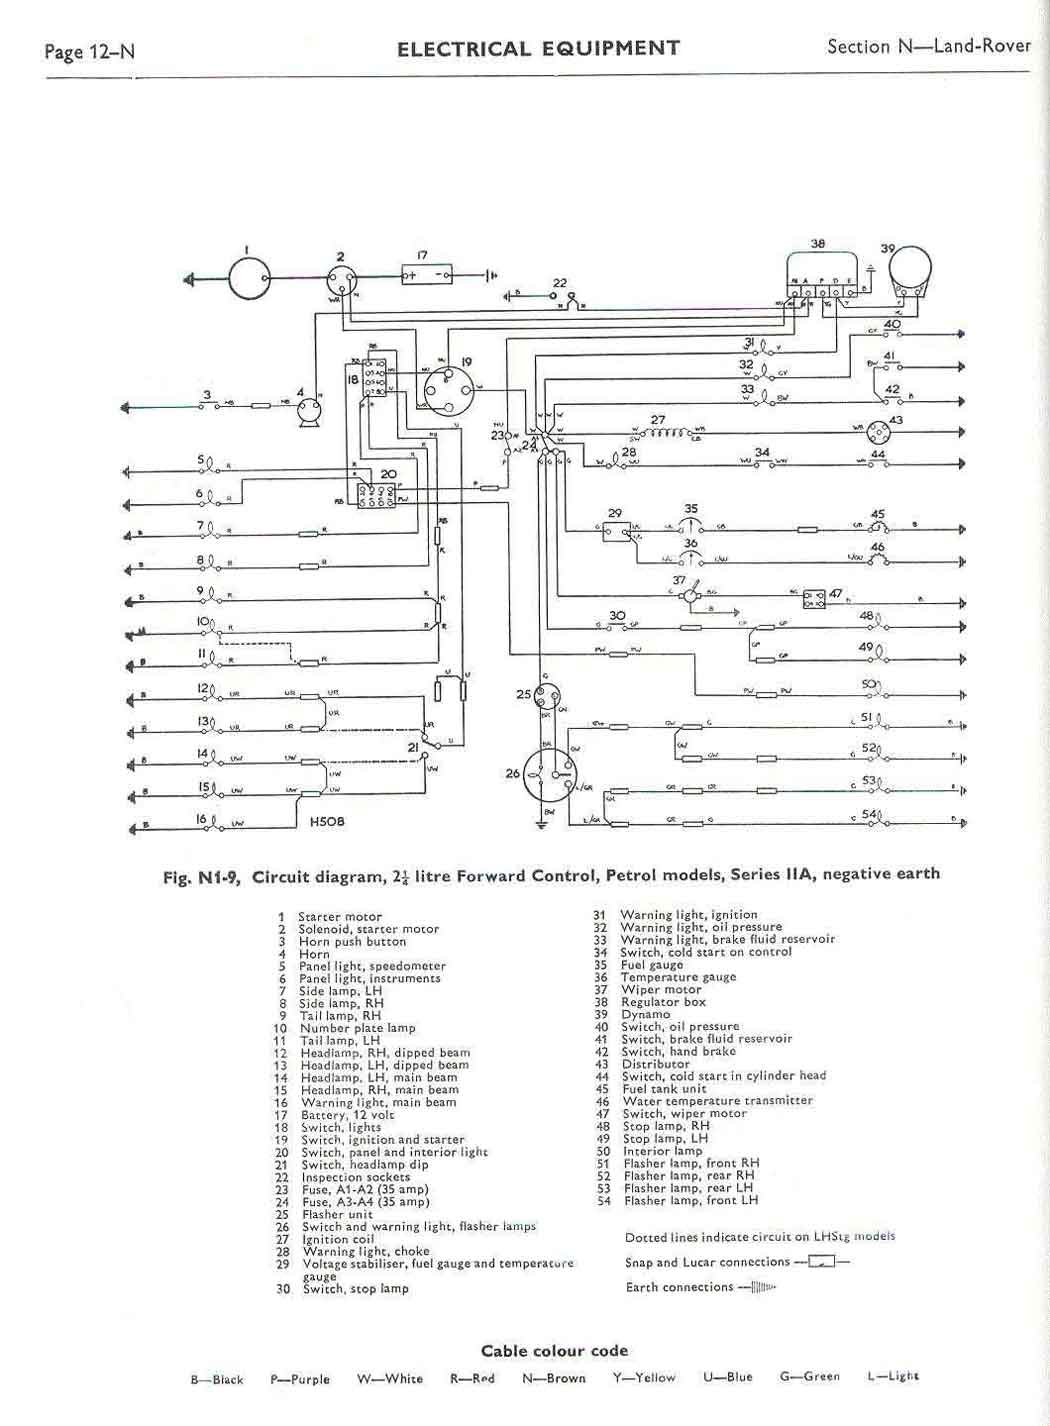 Rover 45 Wiring Diagram : 23 Wiring Diagram Images